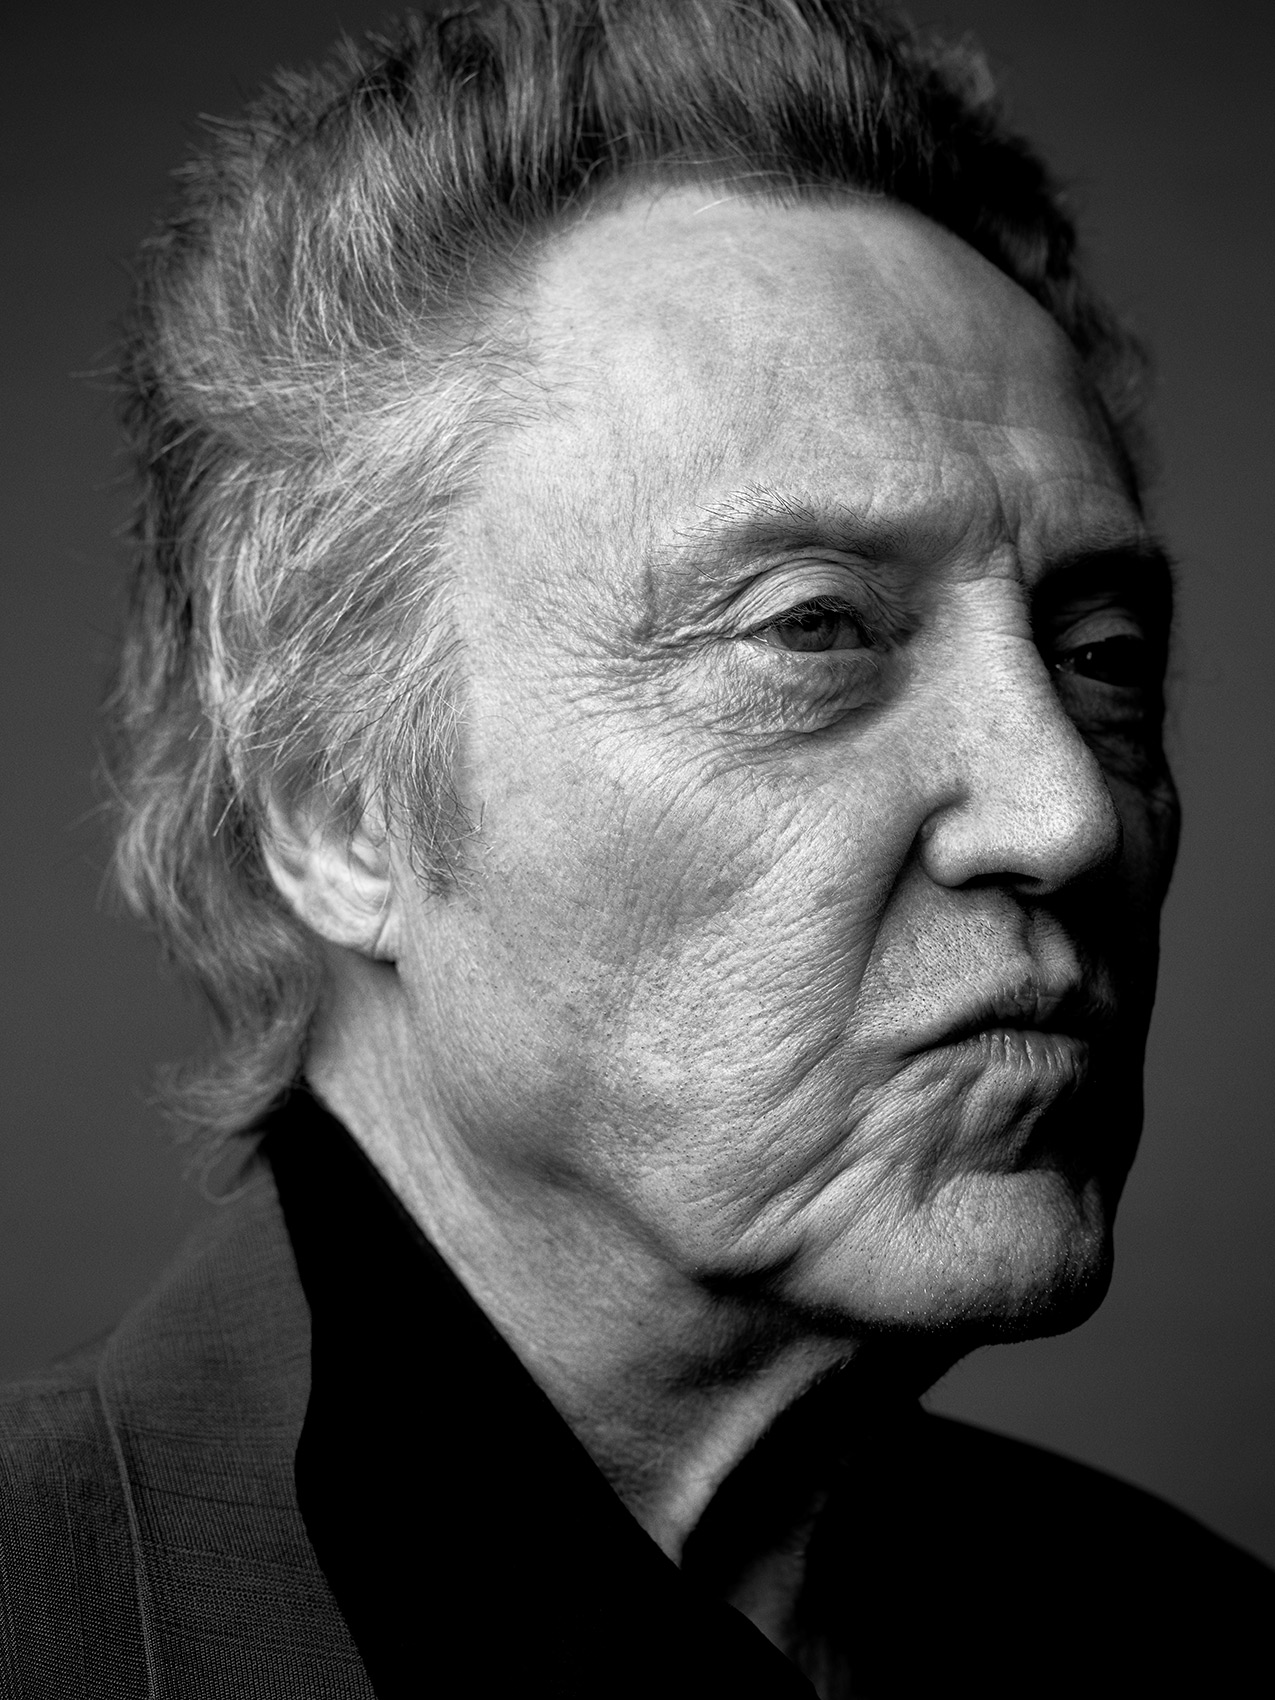 Rick_Wenner_Christopher_Walken_003_Retouched2